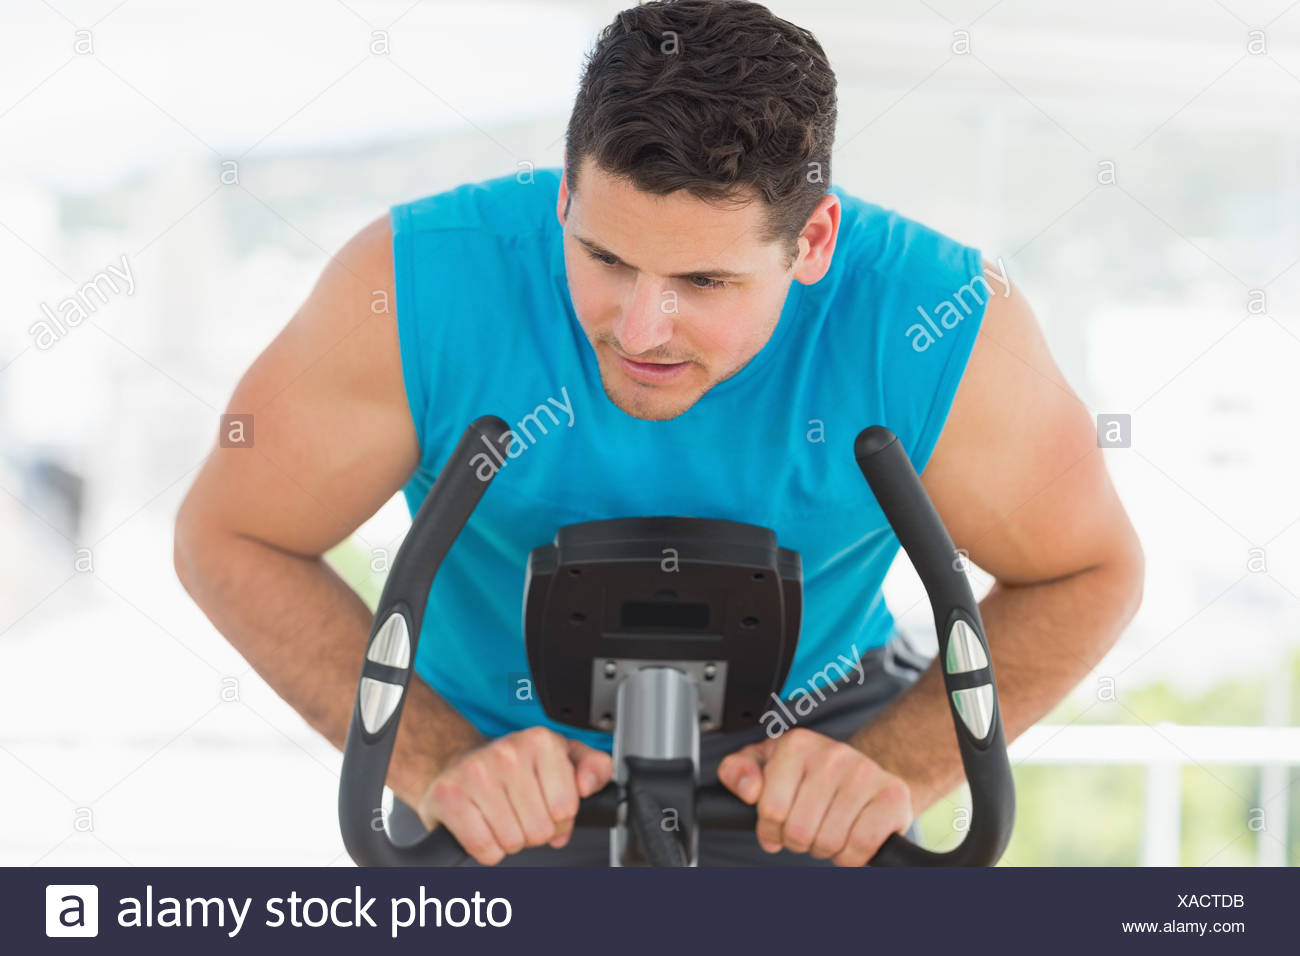 Serious man working out at spinning class Photo Stock